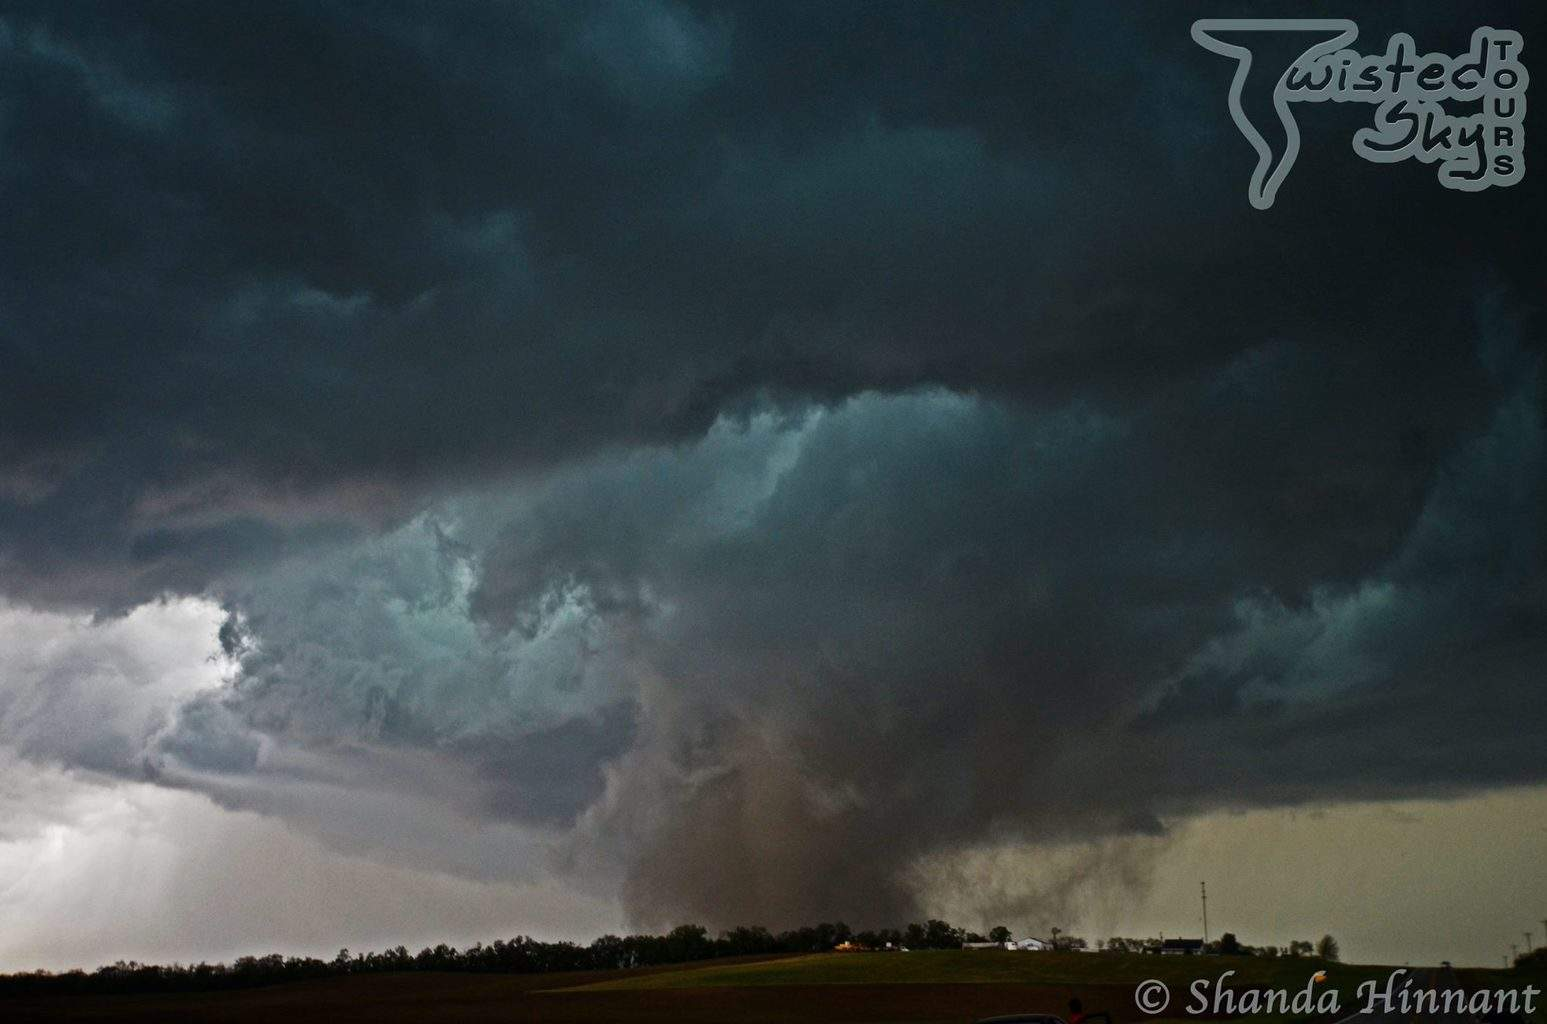 One of the two tornadoes near Pilger, Nebraska - June 16, 2014 A day that not many will forget.